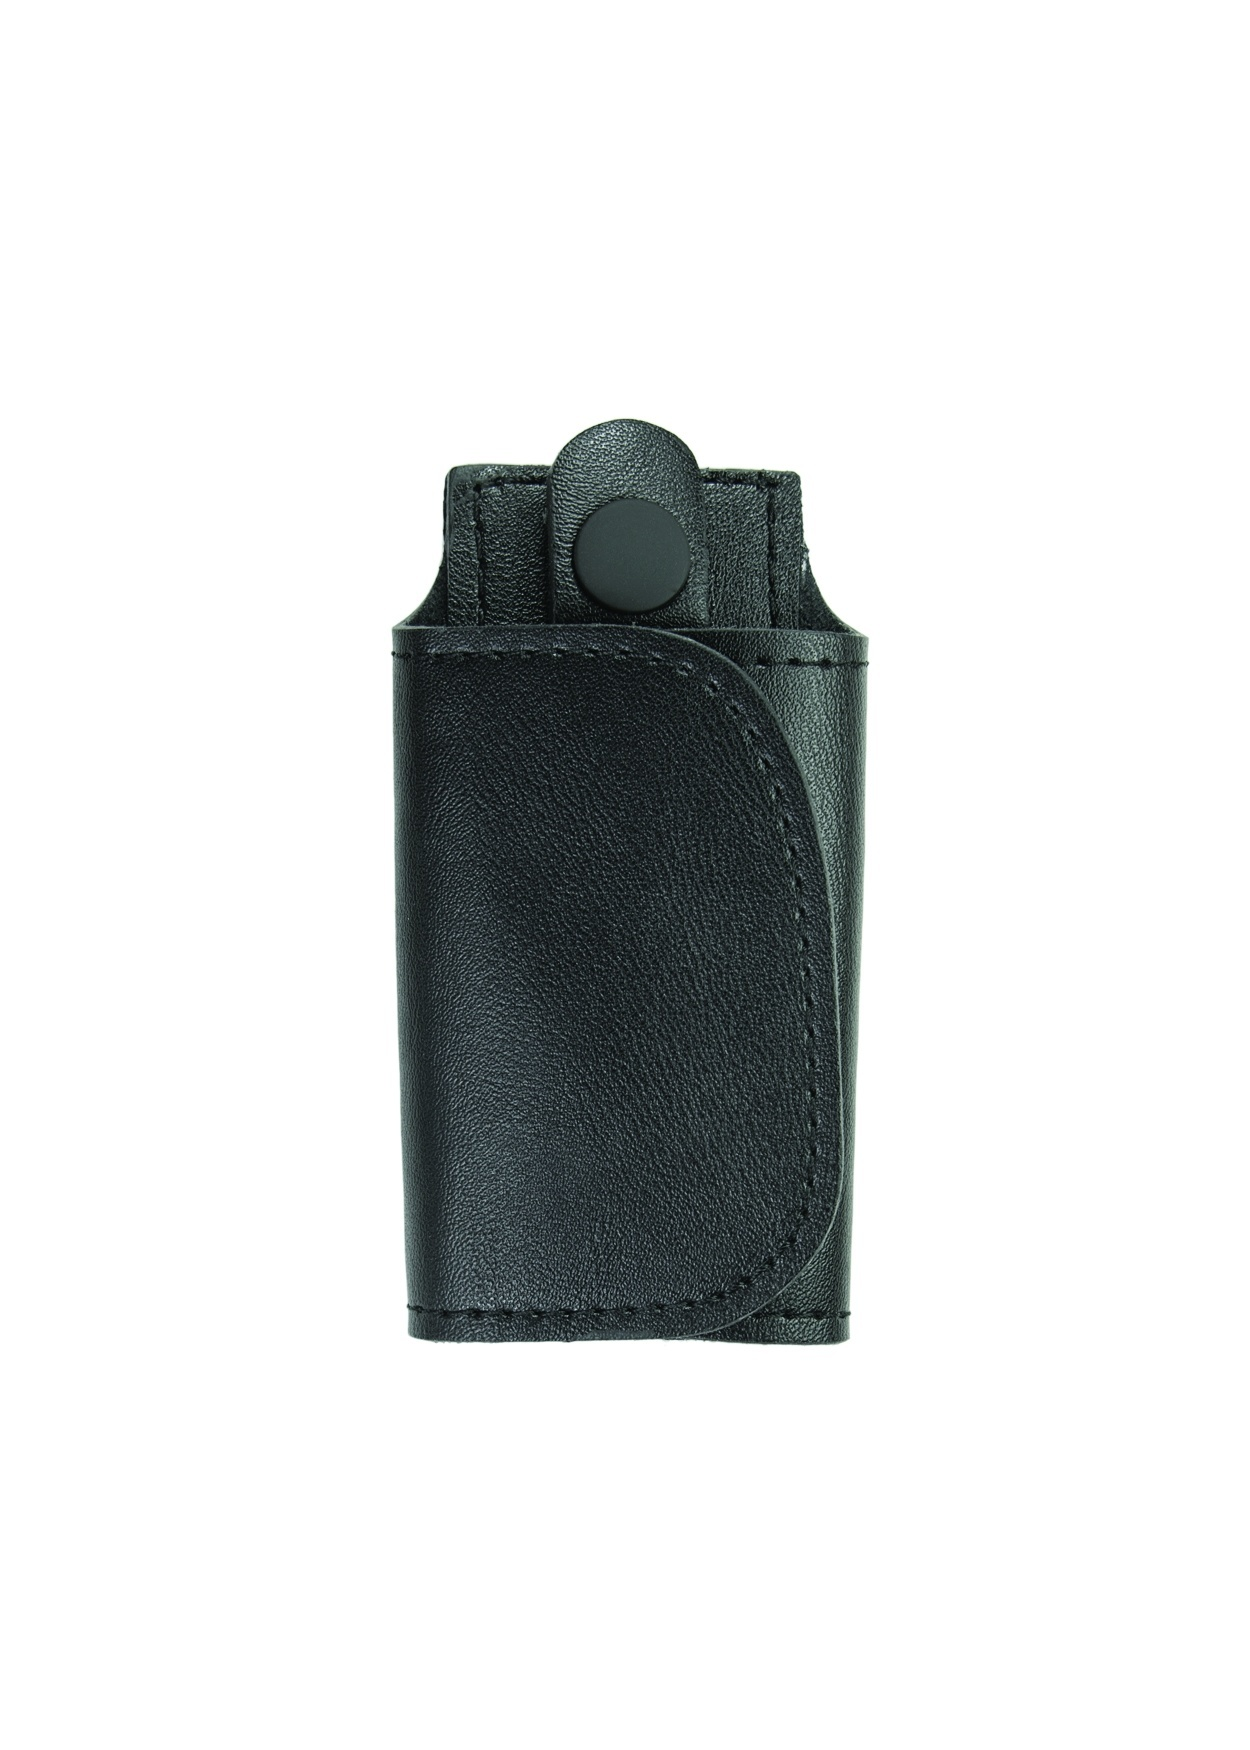 Key Holder, Silent, AirTek, Smooth, Black Snap